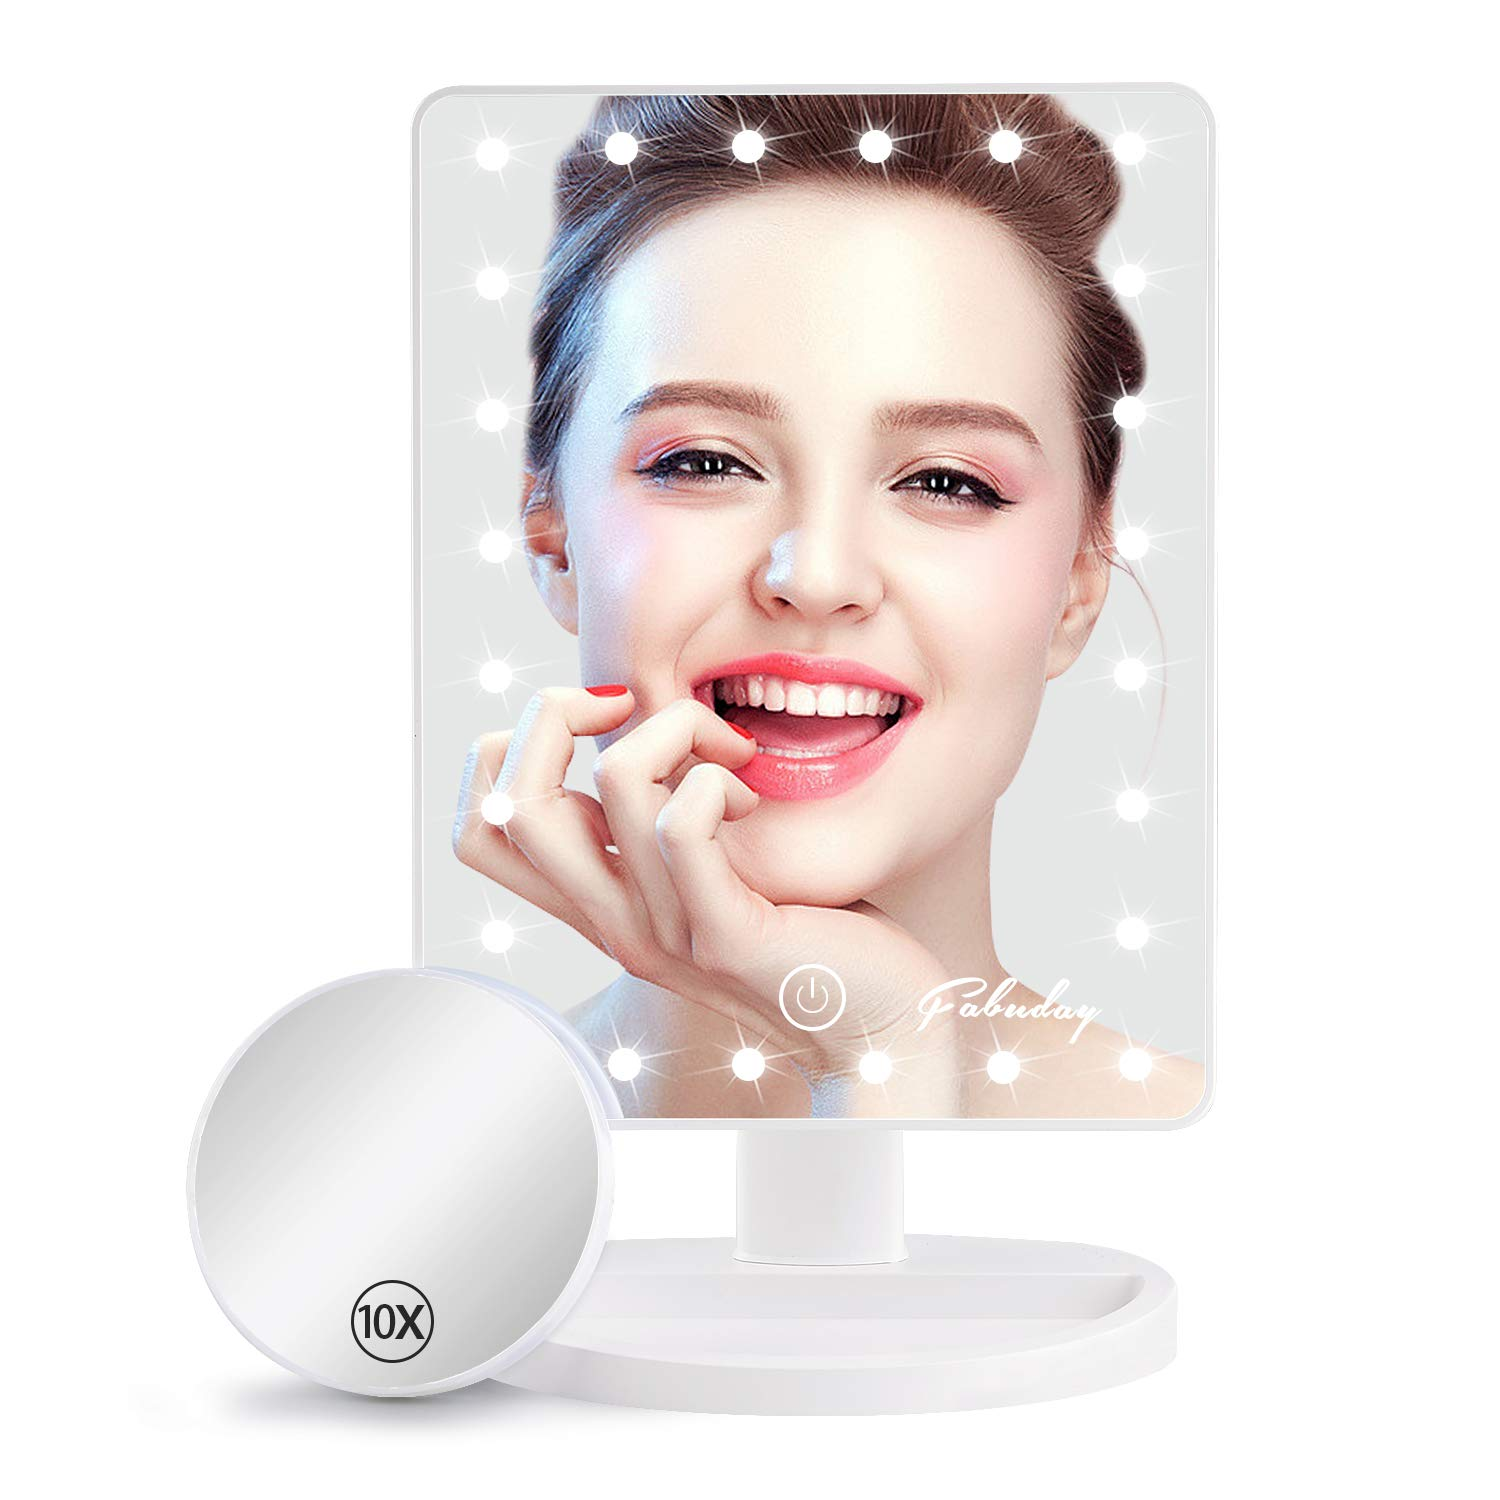 Fabuday Makeup Mirror with Lights, Lighted Makeup Mirror with Detachable 10X Magnification, Touch Screen and Light…